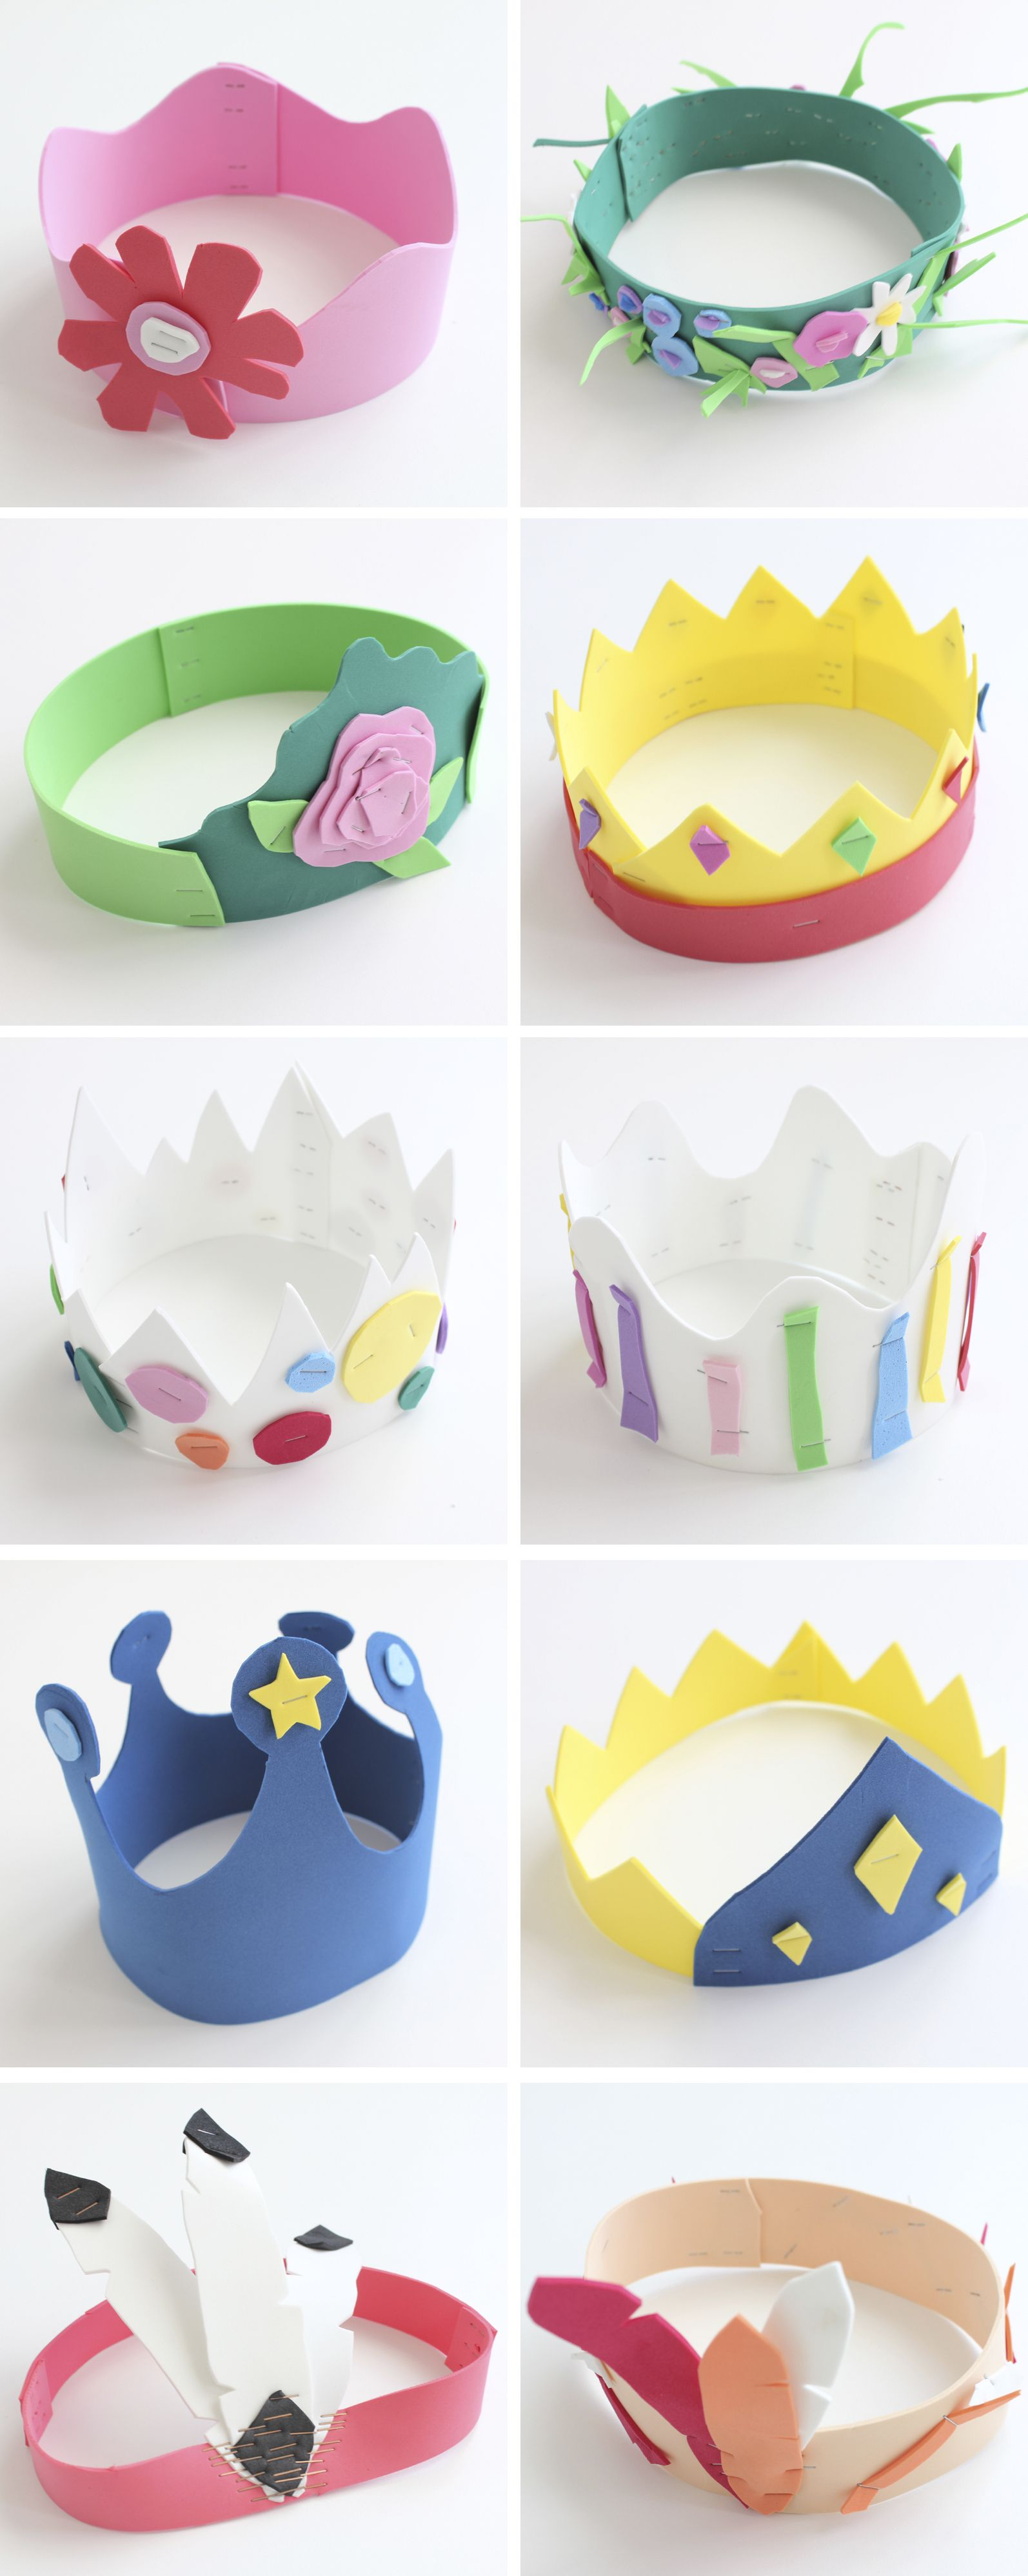 b33673a64 Foam kroon diy voor de verkleedkist. EVA foam crowns. Cute idea for story  time!